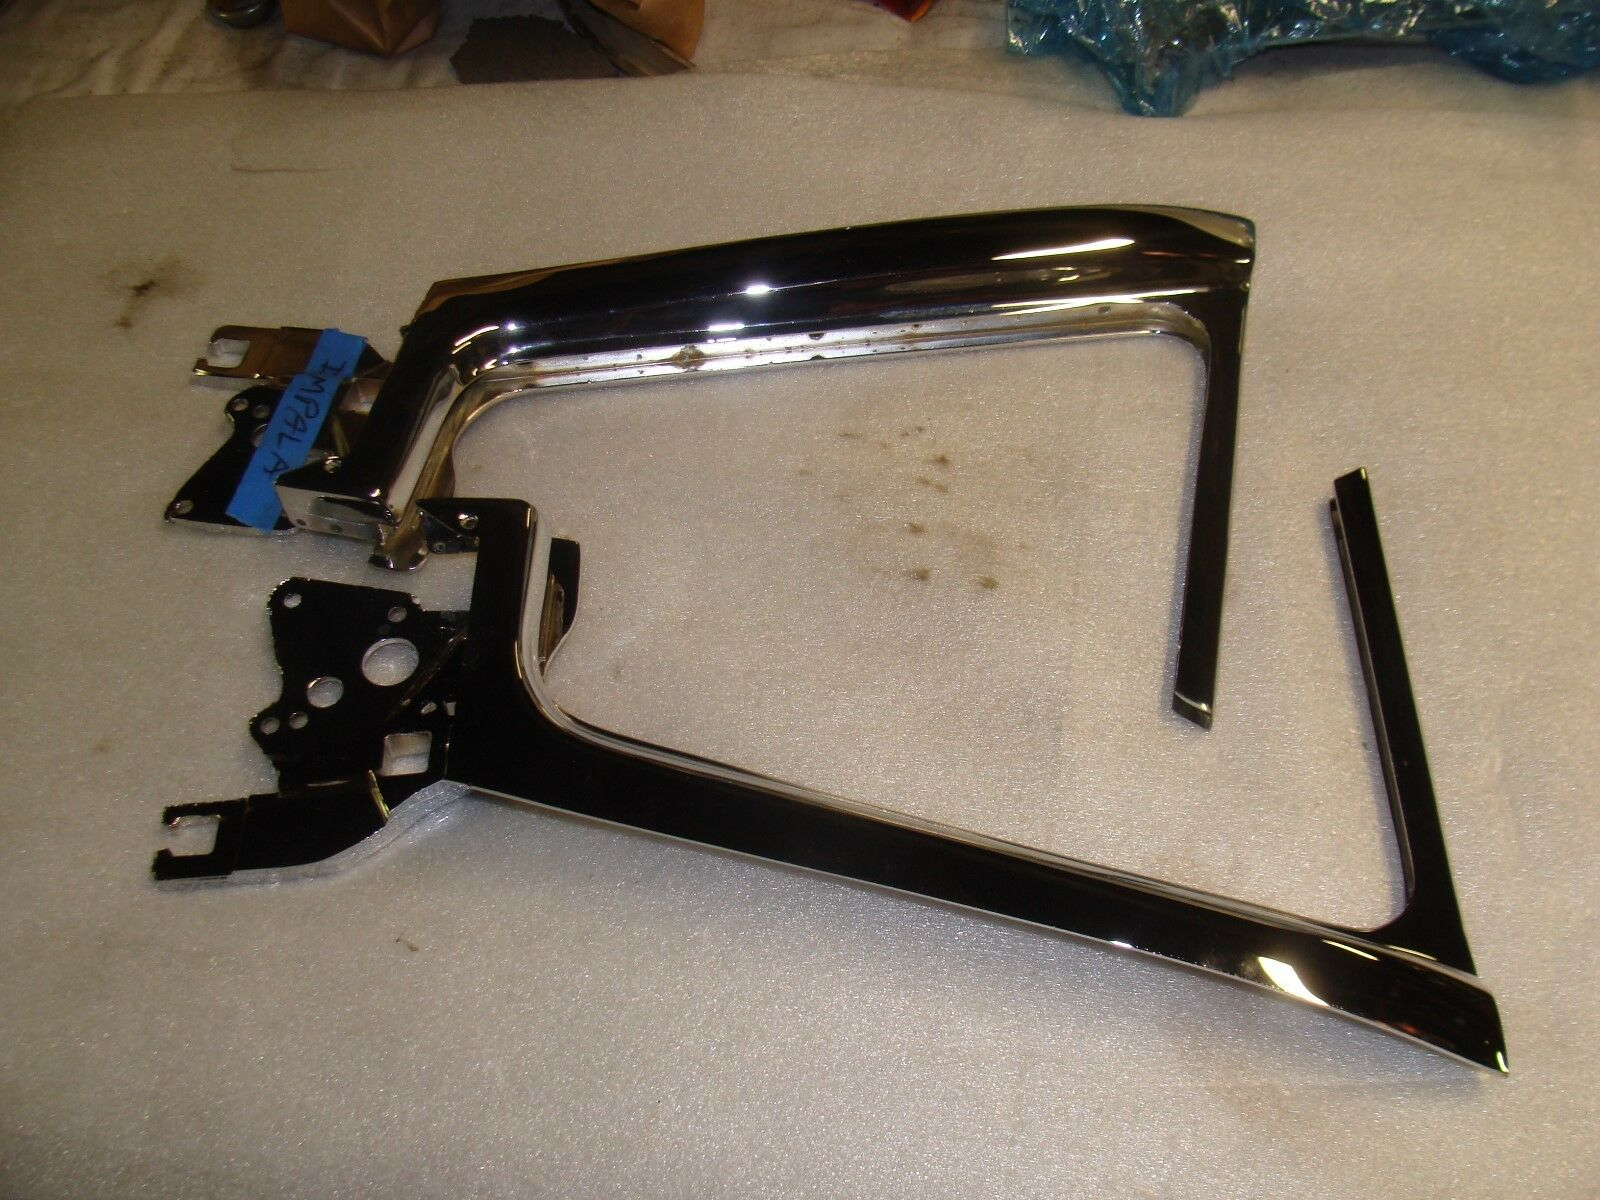 1958 Chevy Impala vent window frames R & L